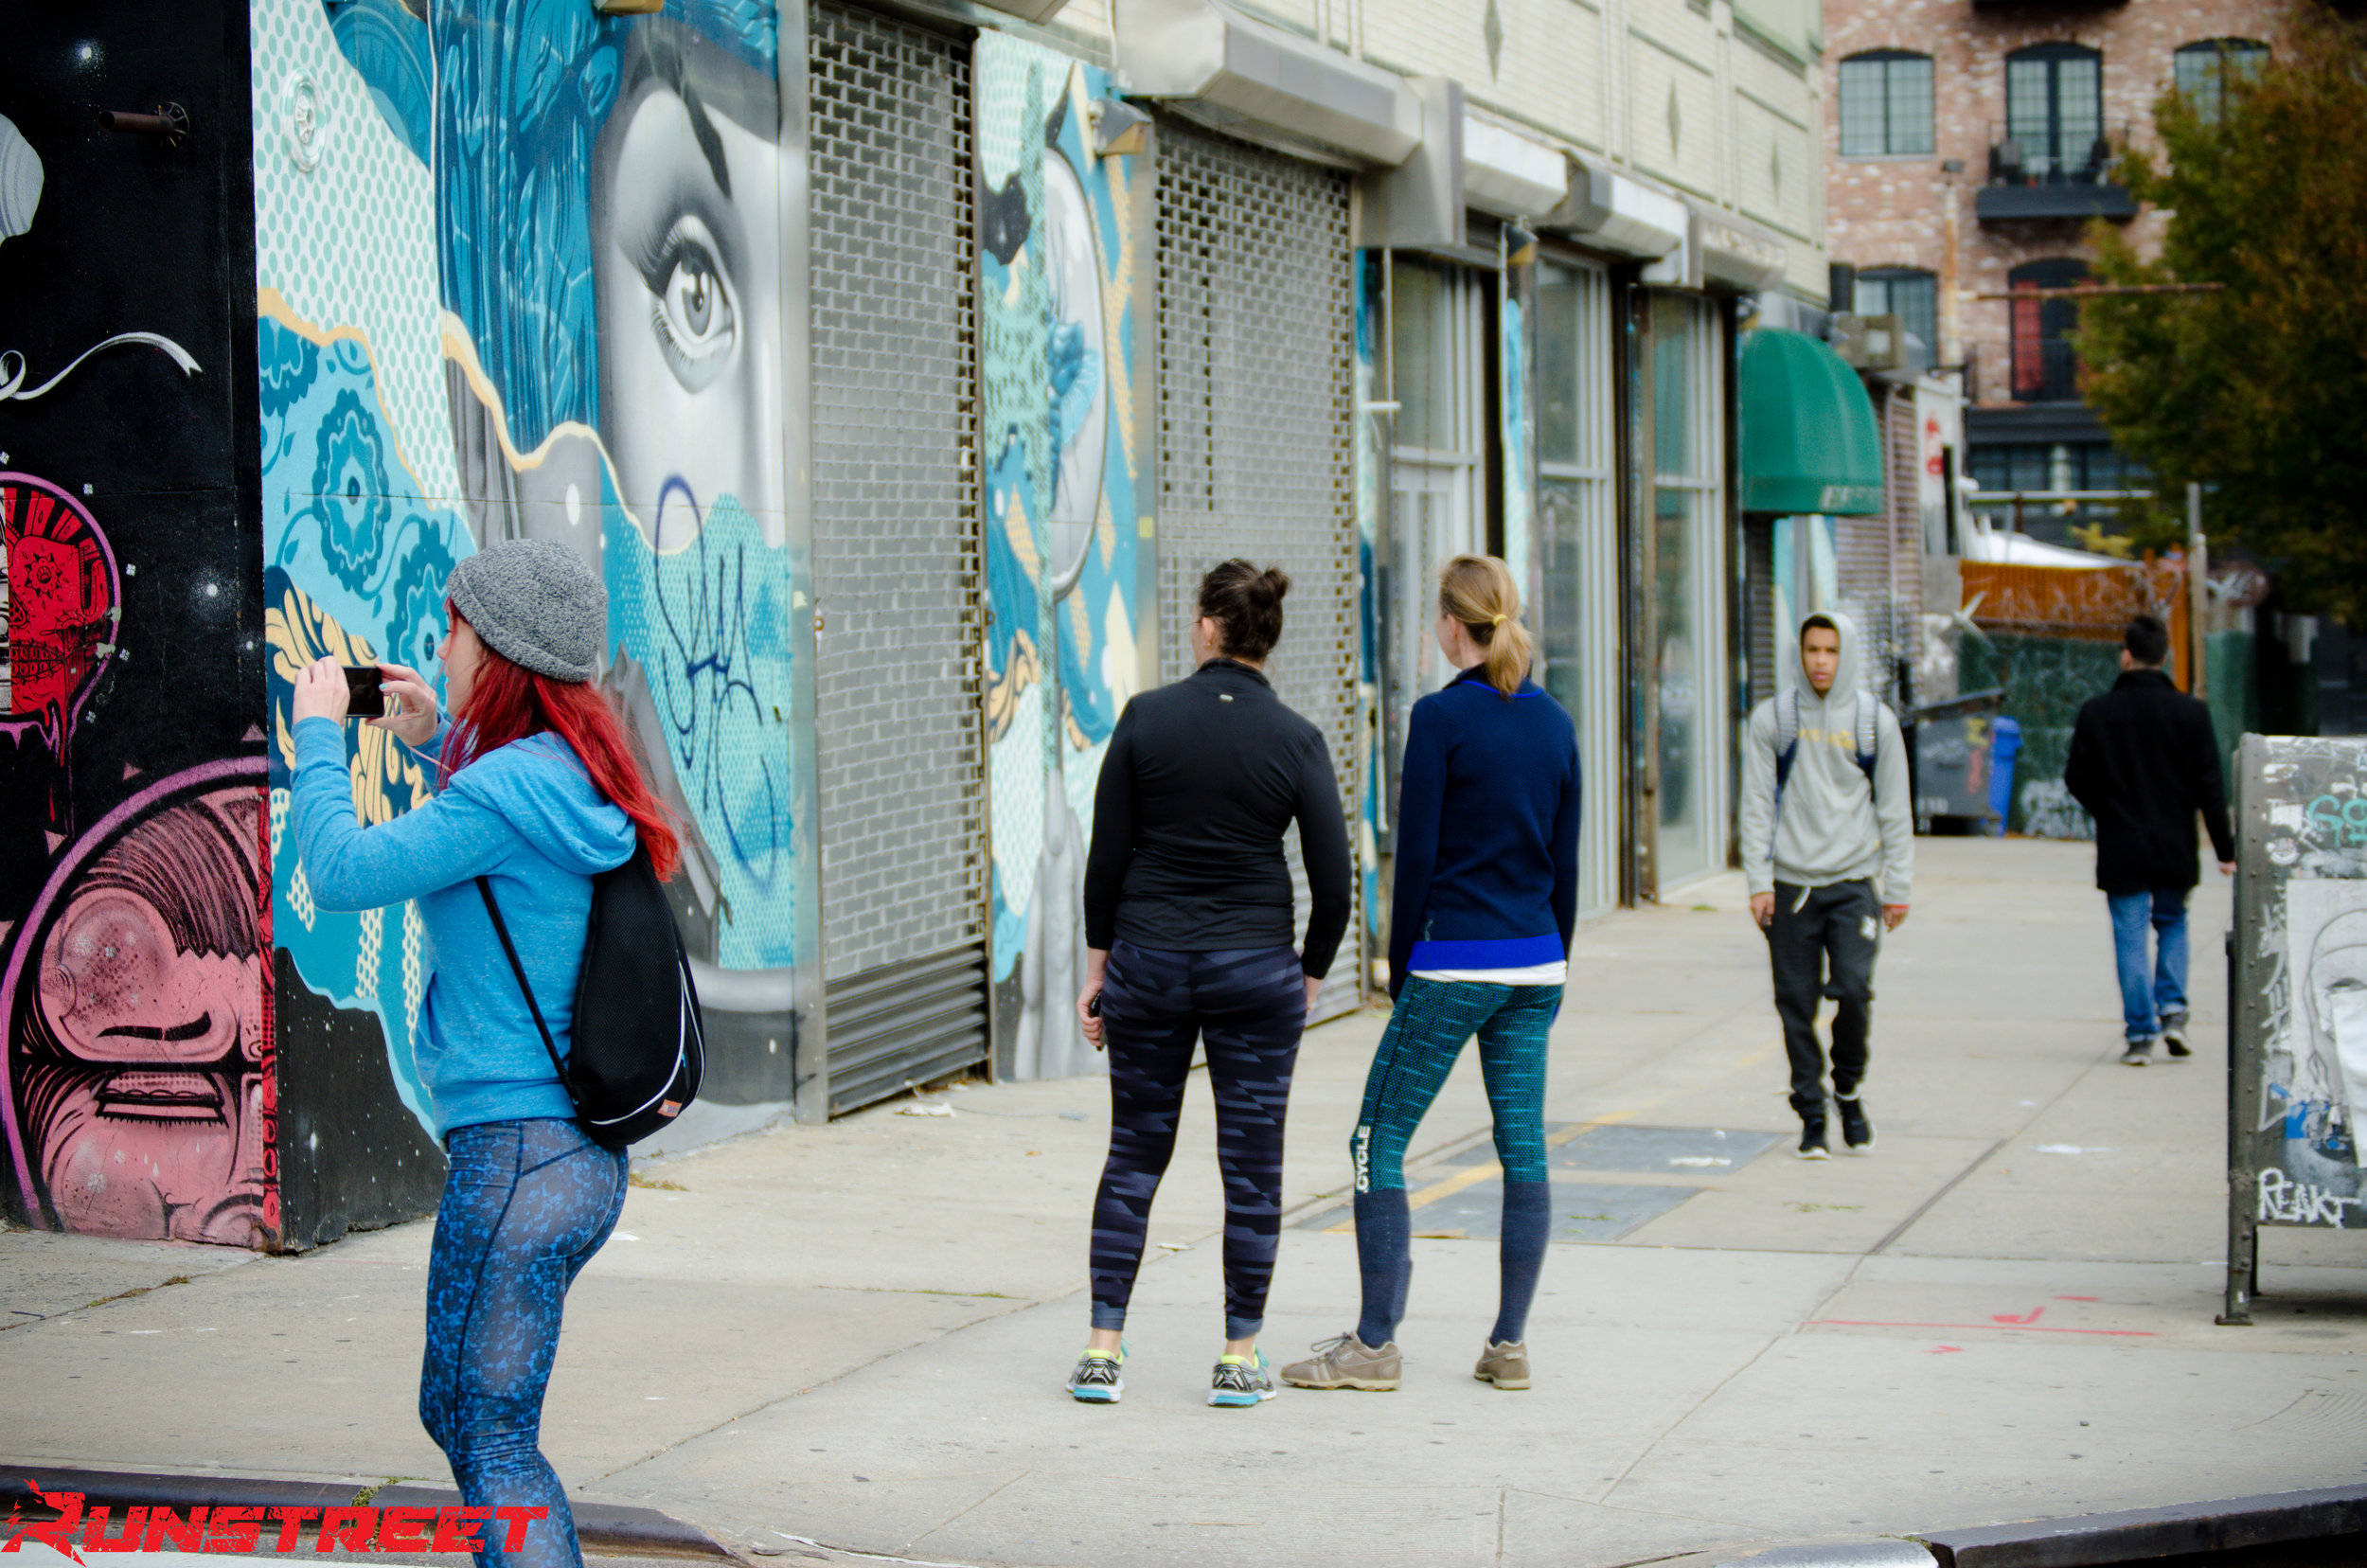 Tristan Eaton  art in Williamsburg.